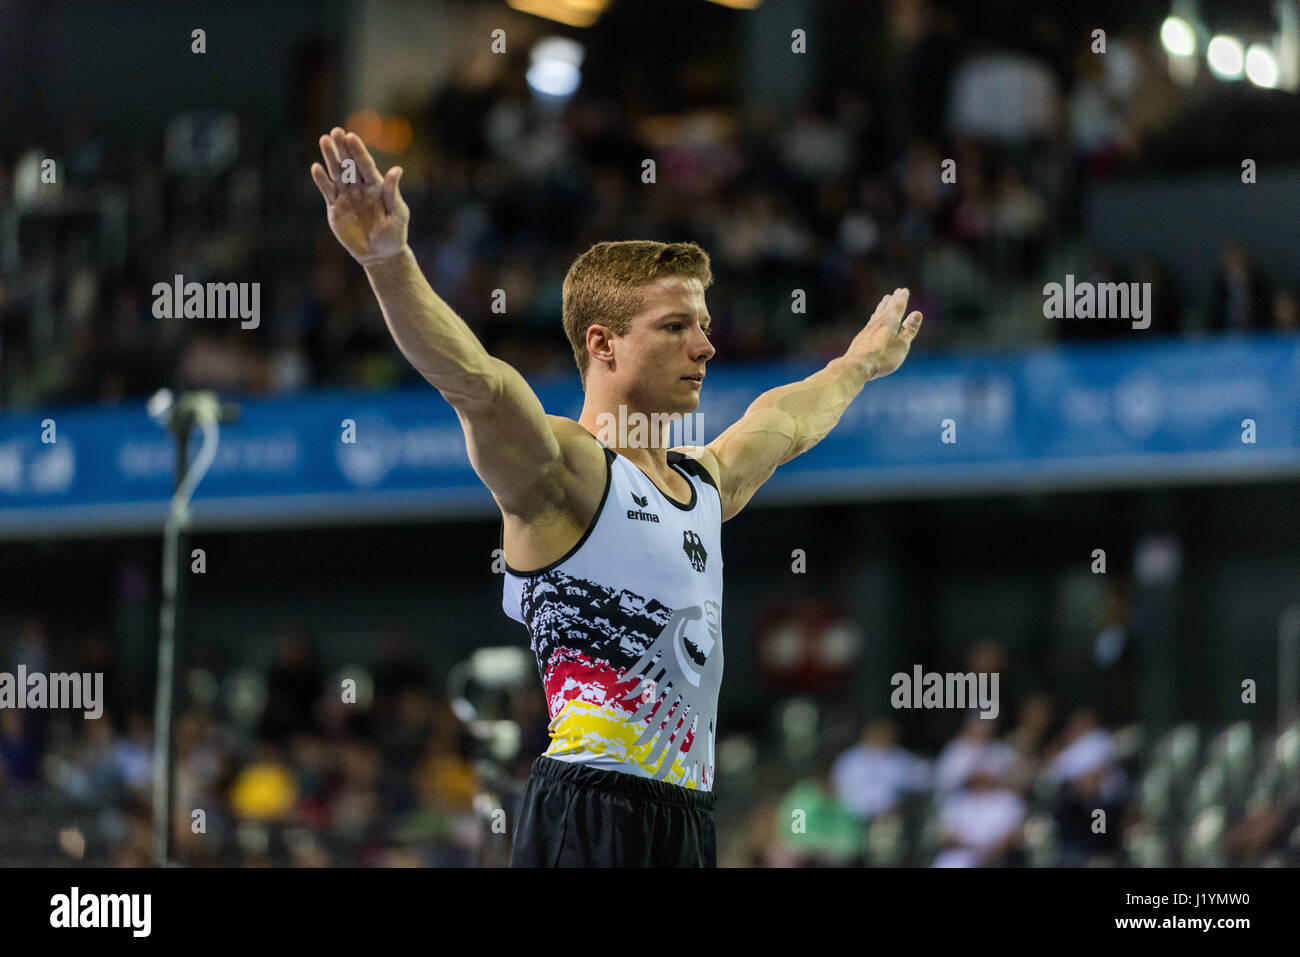 Cluj Napoca, Romania. 21st Apr, 2017. Philipp Herder from Germany performs at the vault at the UEG European Championships - Stock Image